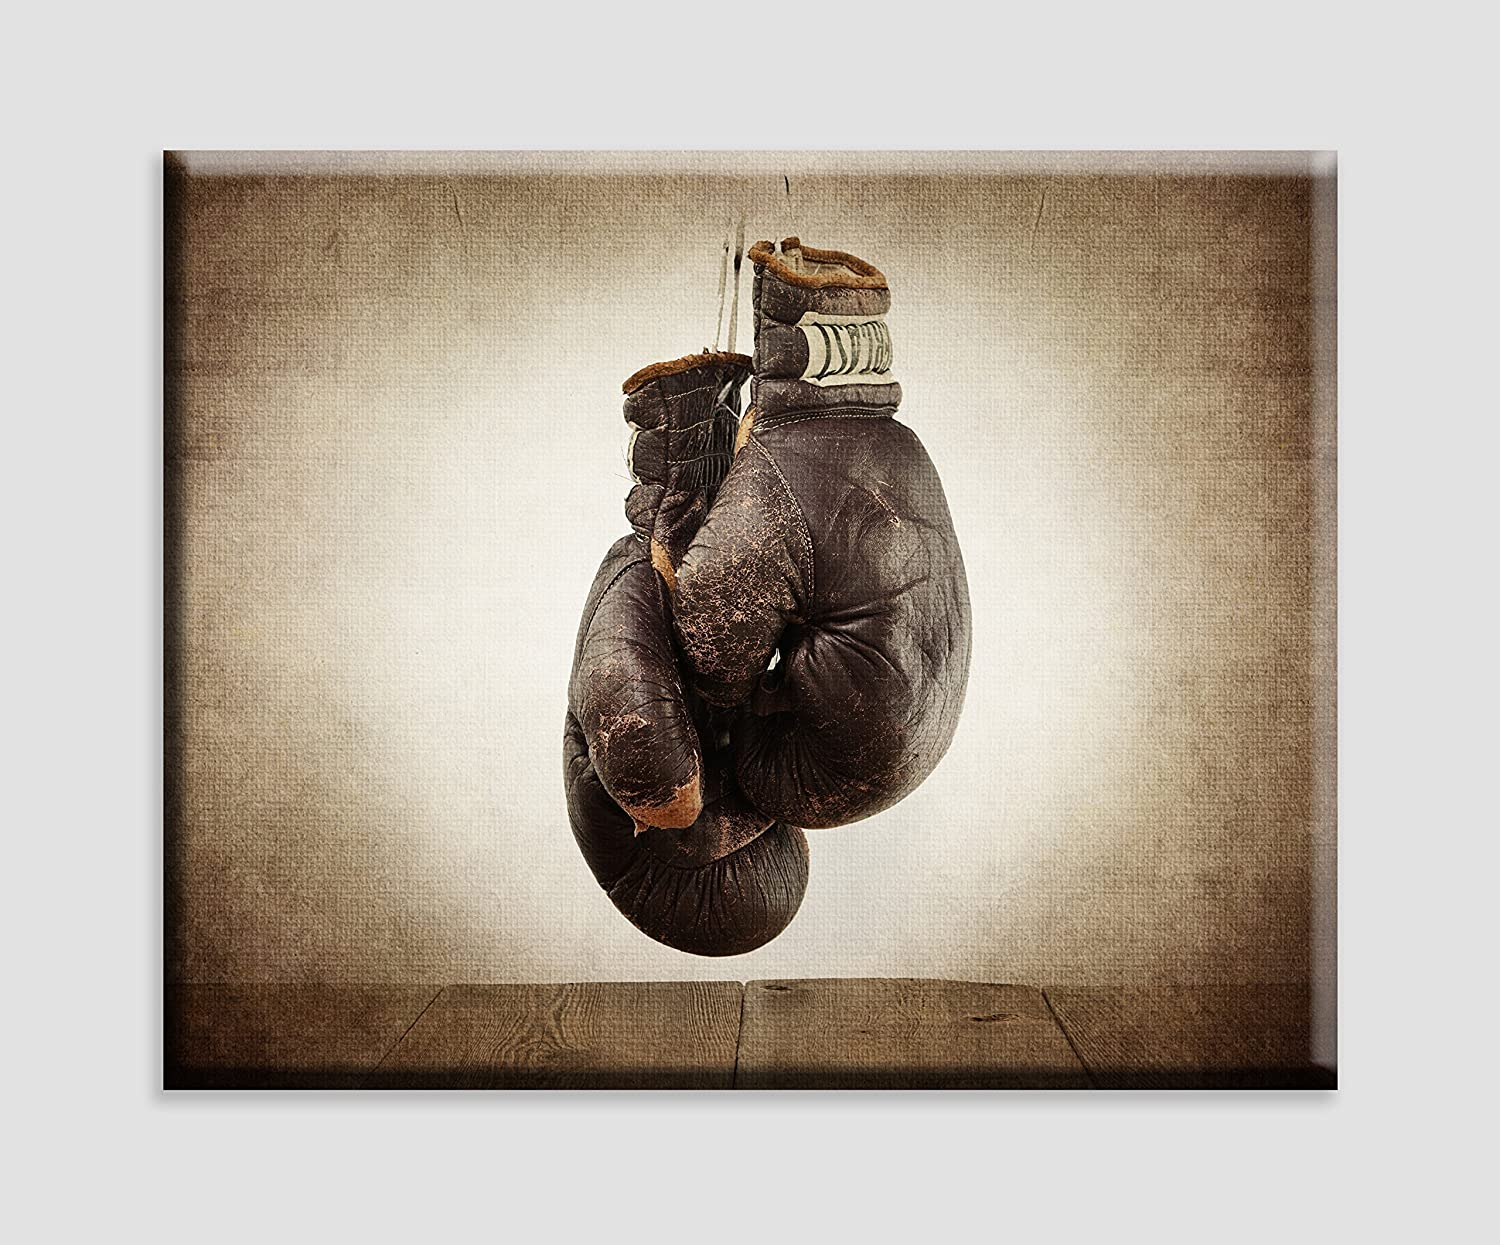 Boxing artwork Man Cave art Vintage Boxing Gloves on Vintage Background Stretched Canvas Wall Art Vintage Sports Nursery Art Boxing Nursery decor Sports Decor Kids Room Wall Art.